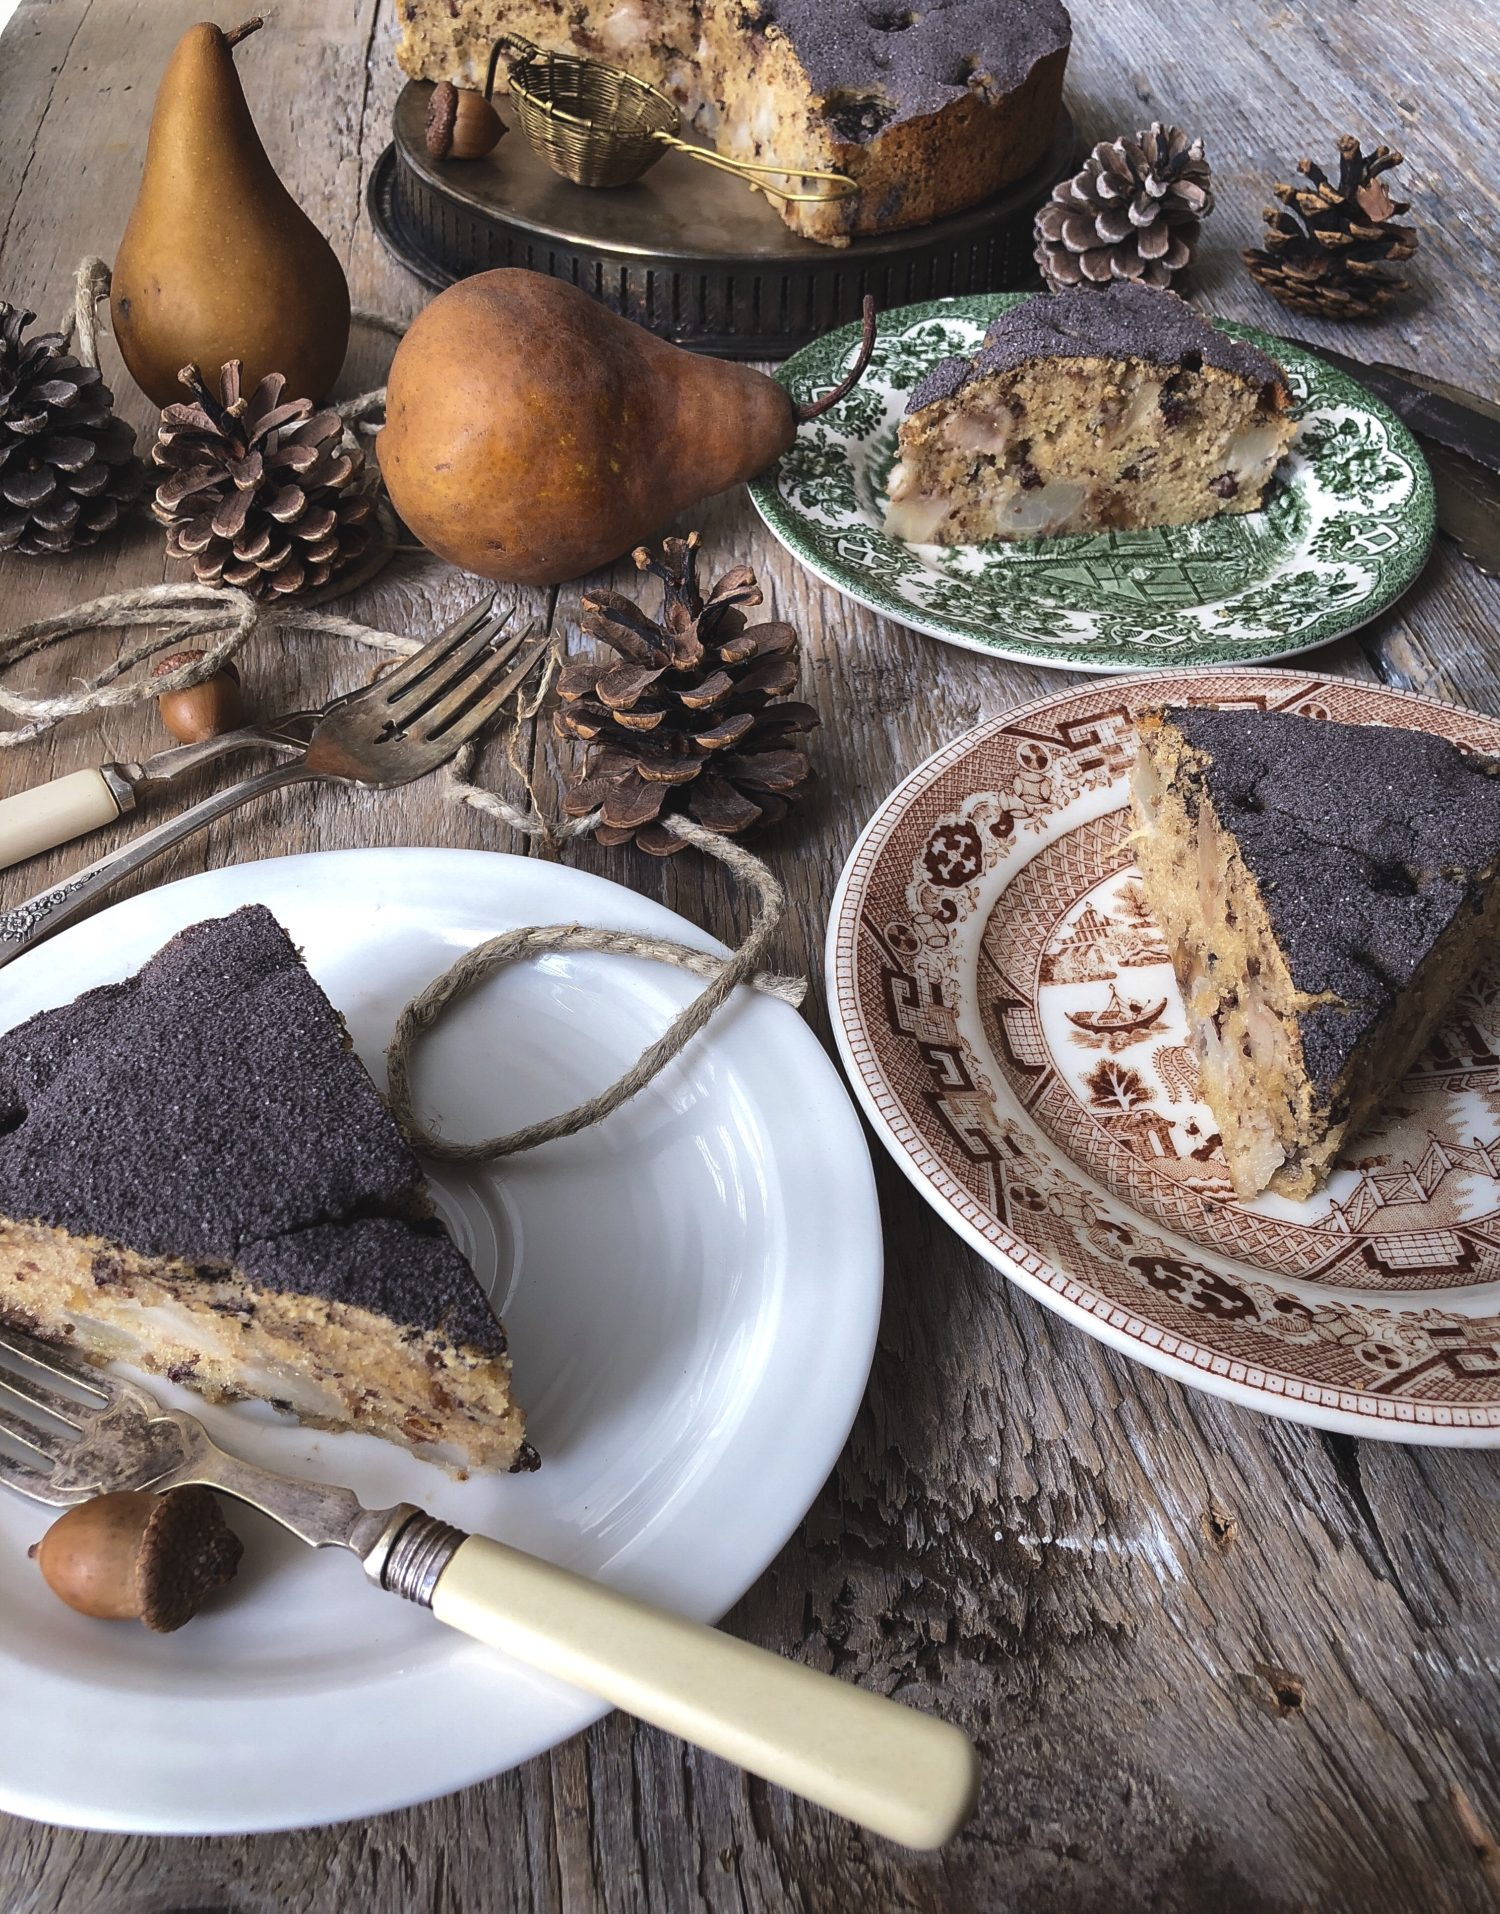 tender Pear and Chestnut cake dusted with cocoa powder